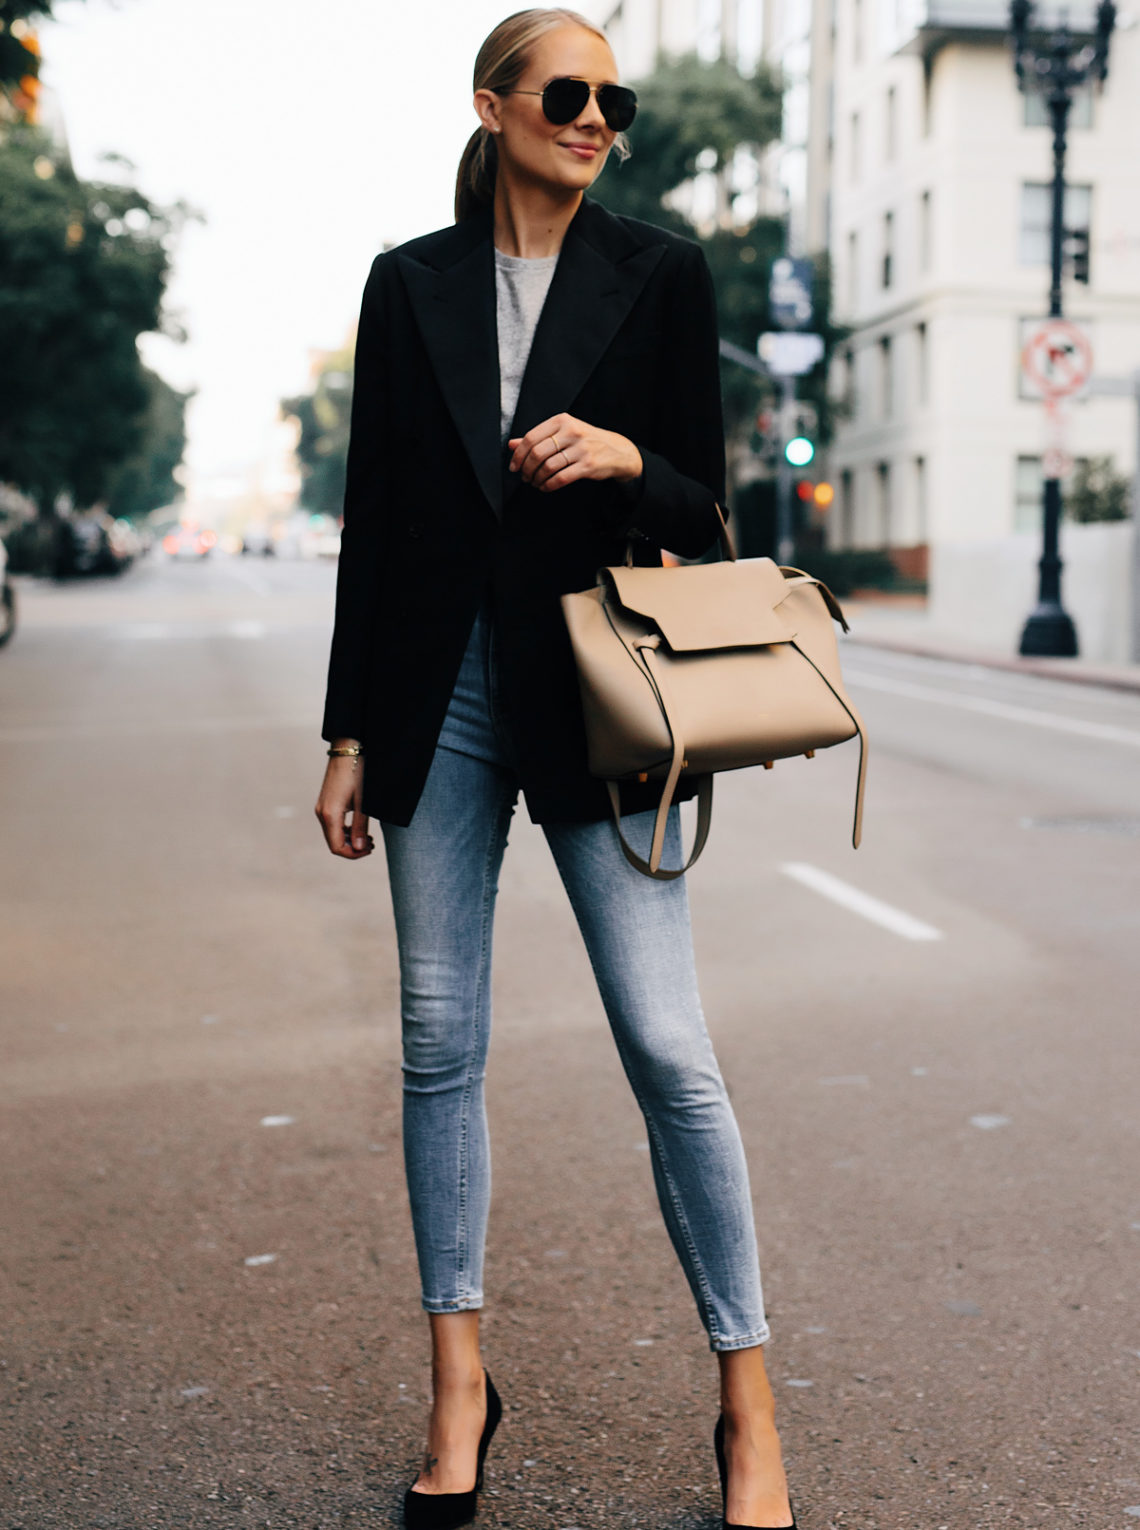 Blonde Woman Wearing Ralph Lauren Polo Black Blazer Grey Tshirt Denim Skinny Jeans Black Heels Outfit Celine Mini Belt Bag Fashion Jackson San Diego Fashion Blogger Street Style